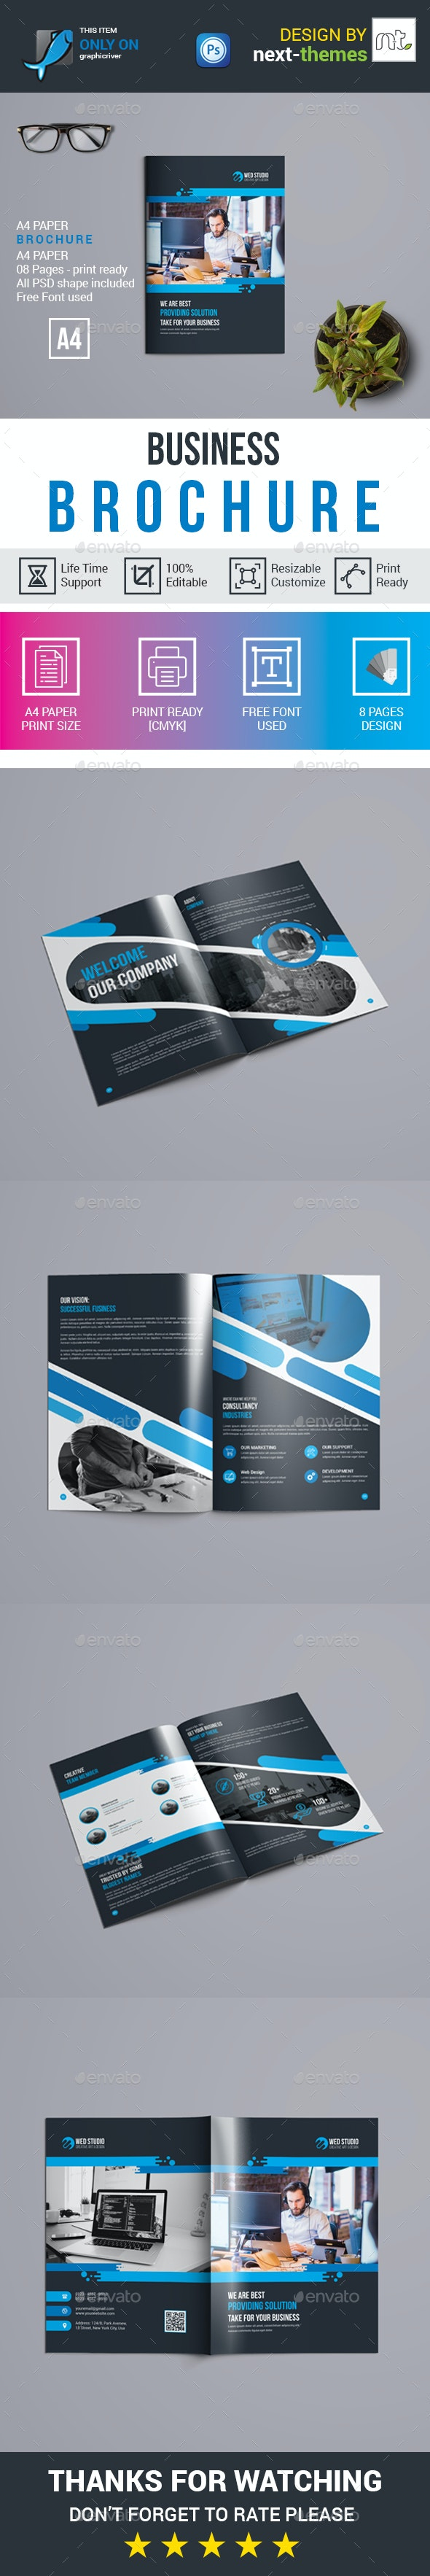 Business Brochure 8 Page - Brochures Print Templates